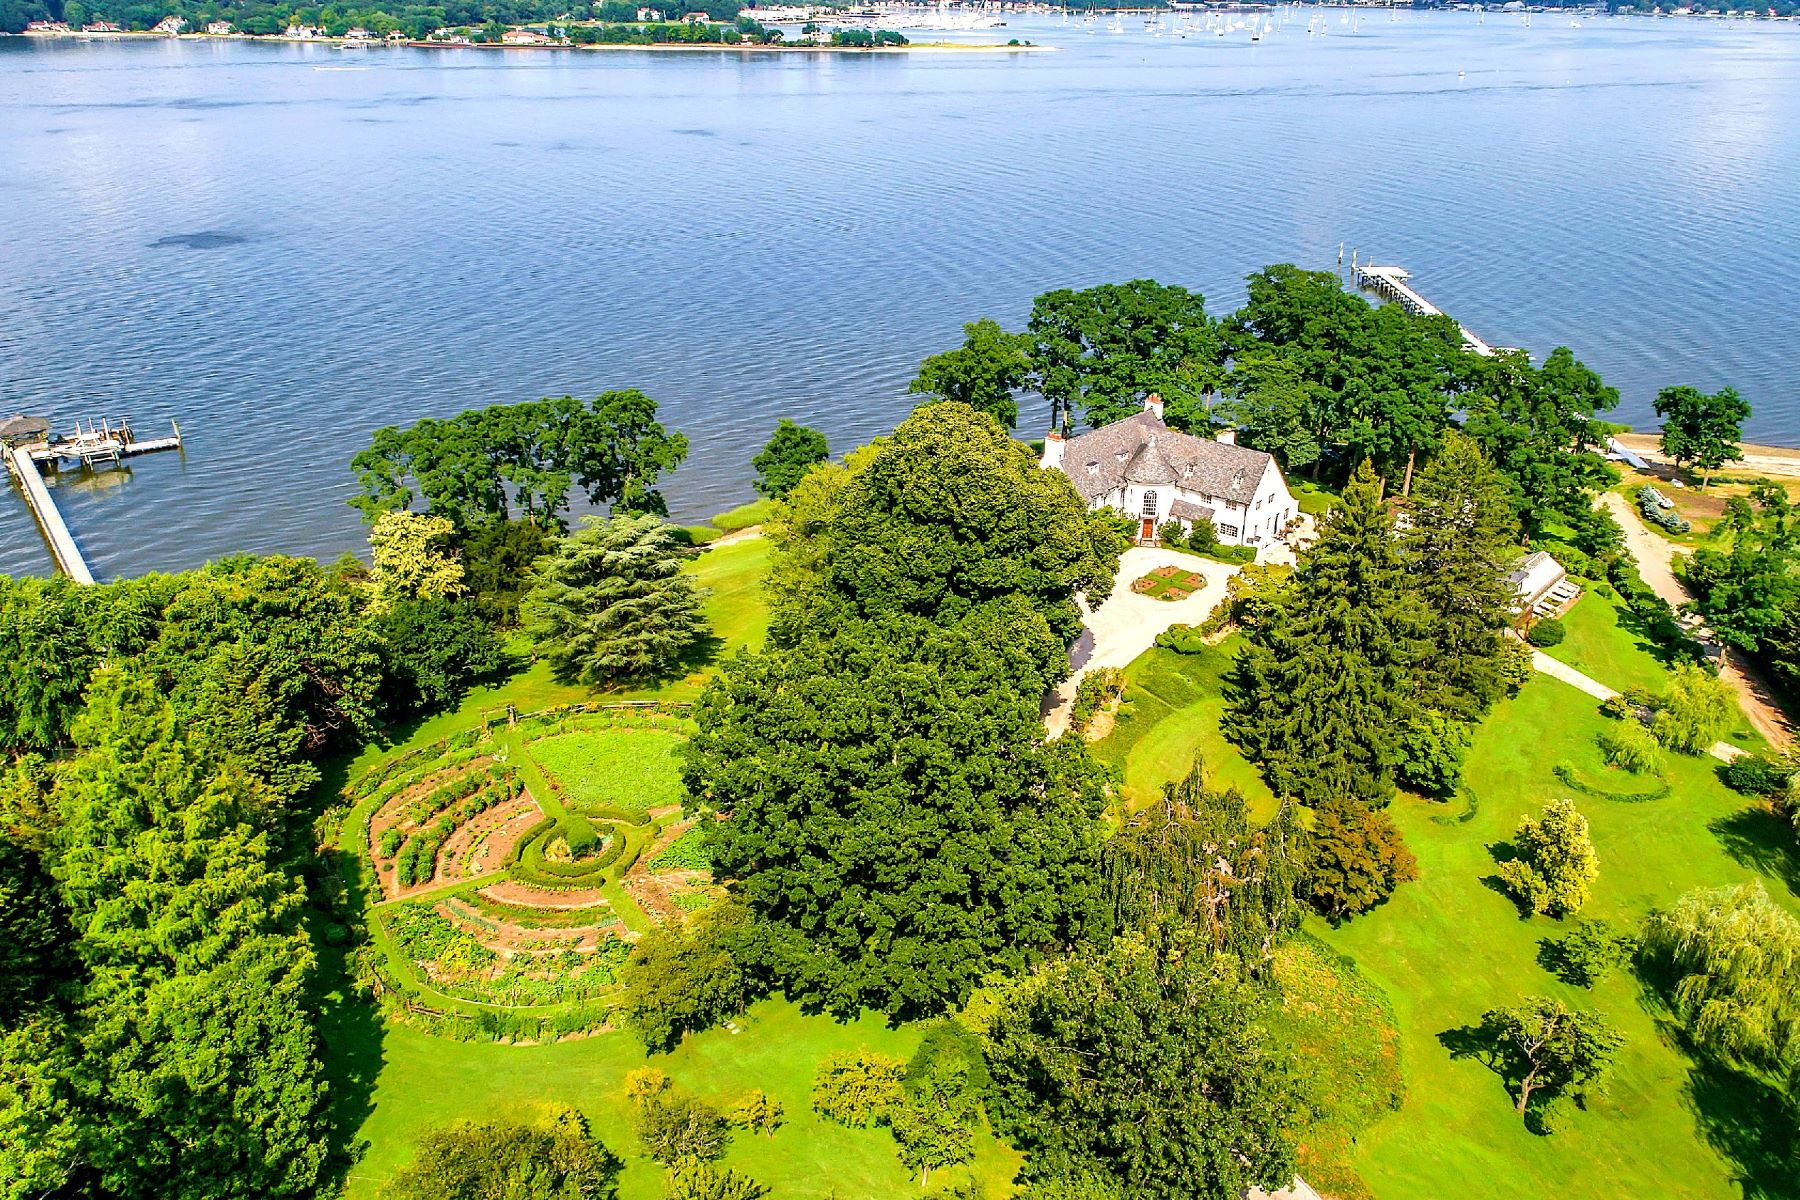 Property for Sale at Great Neck 229 Dock Lane Great Neck, New York 11024 United States